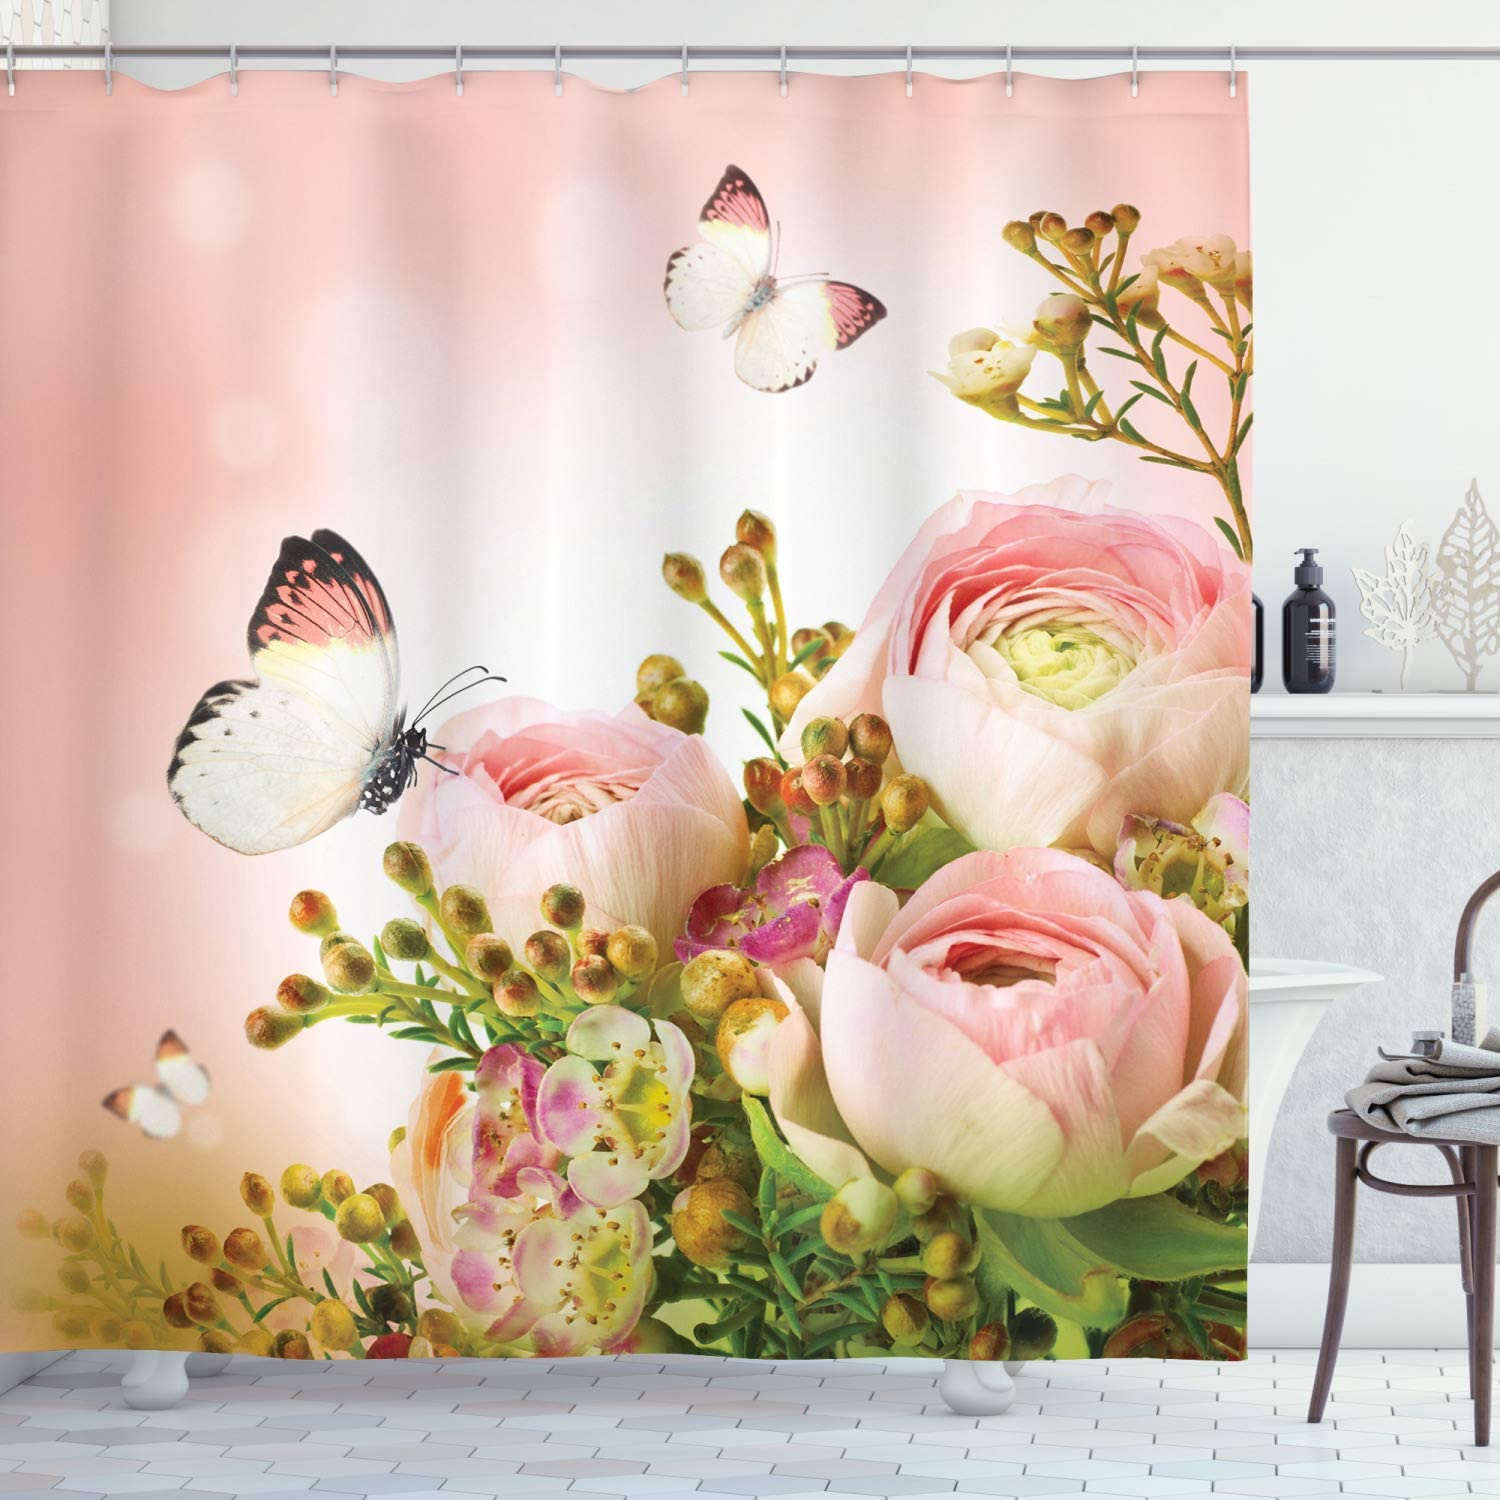 Details about  /Abstract art of Butterflies and Flowers Shower Curtain Bathroom Sets 71 Inches